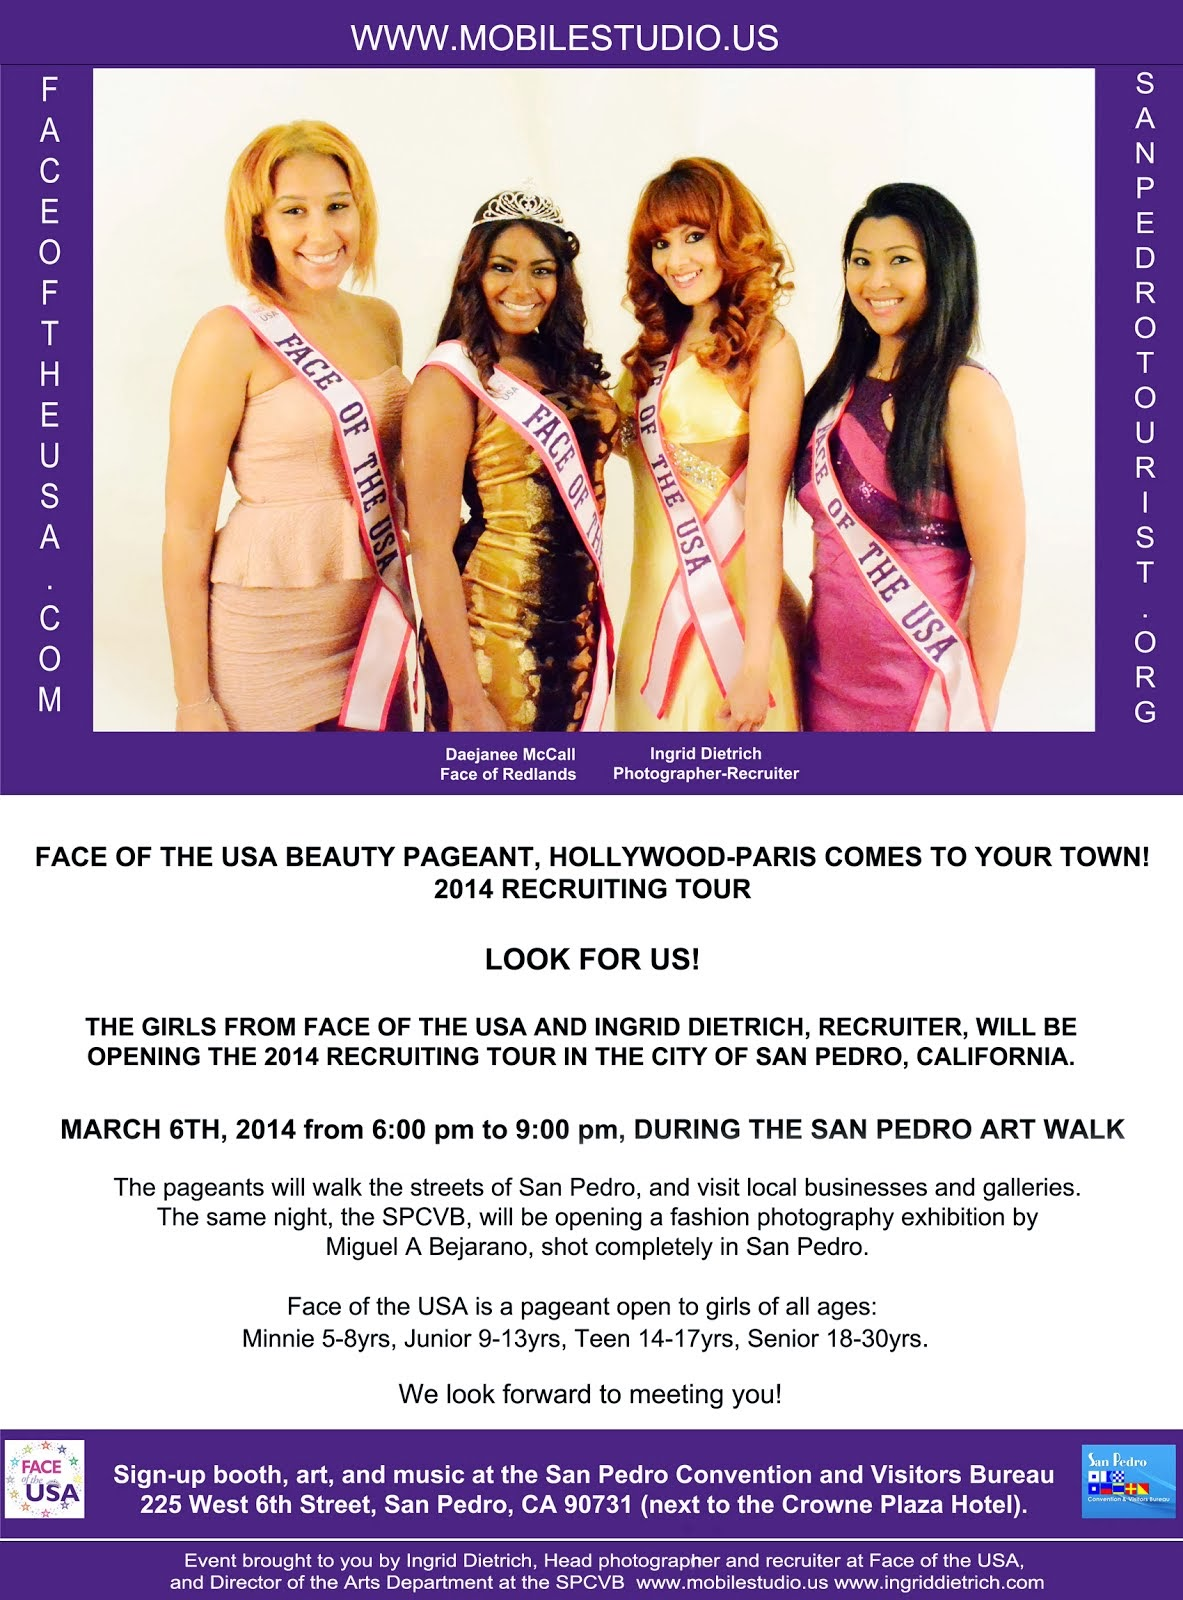 Beauty Pageant Tour opens in San Pedro,CA